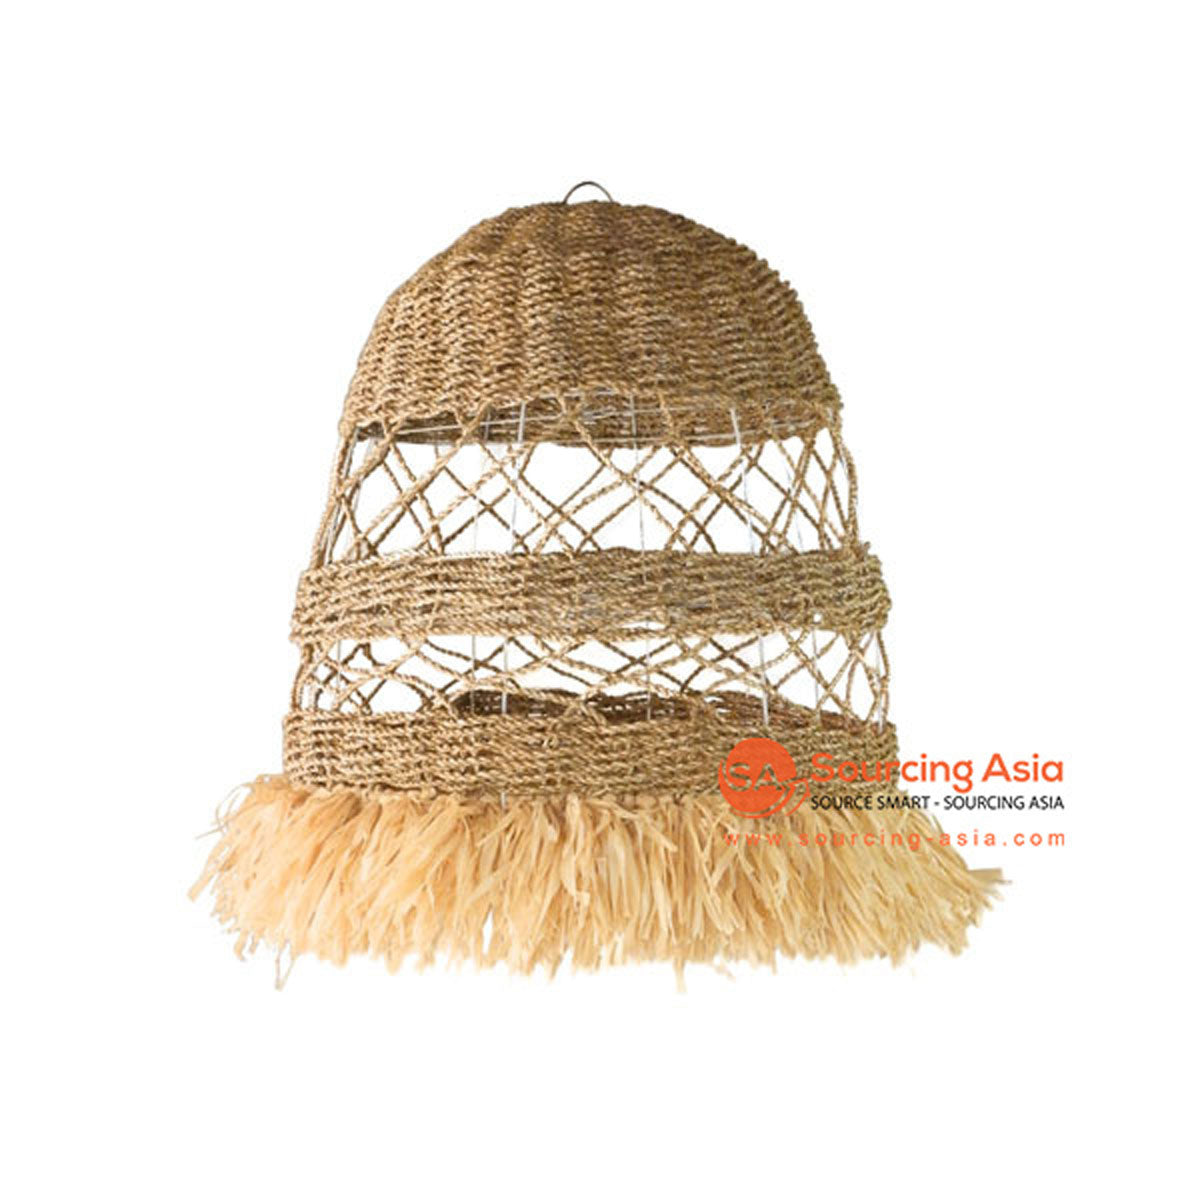 SHL063-9 NATURAL SEAGRASS LIGHTSHADE